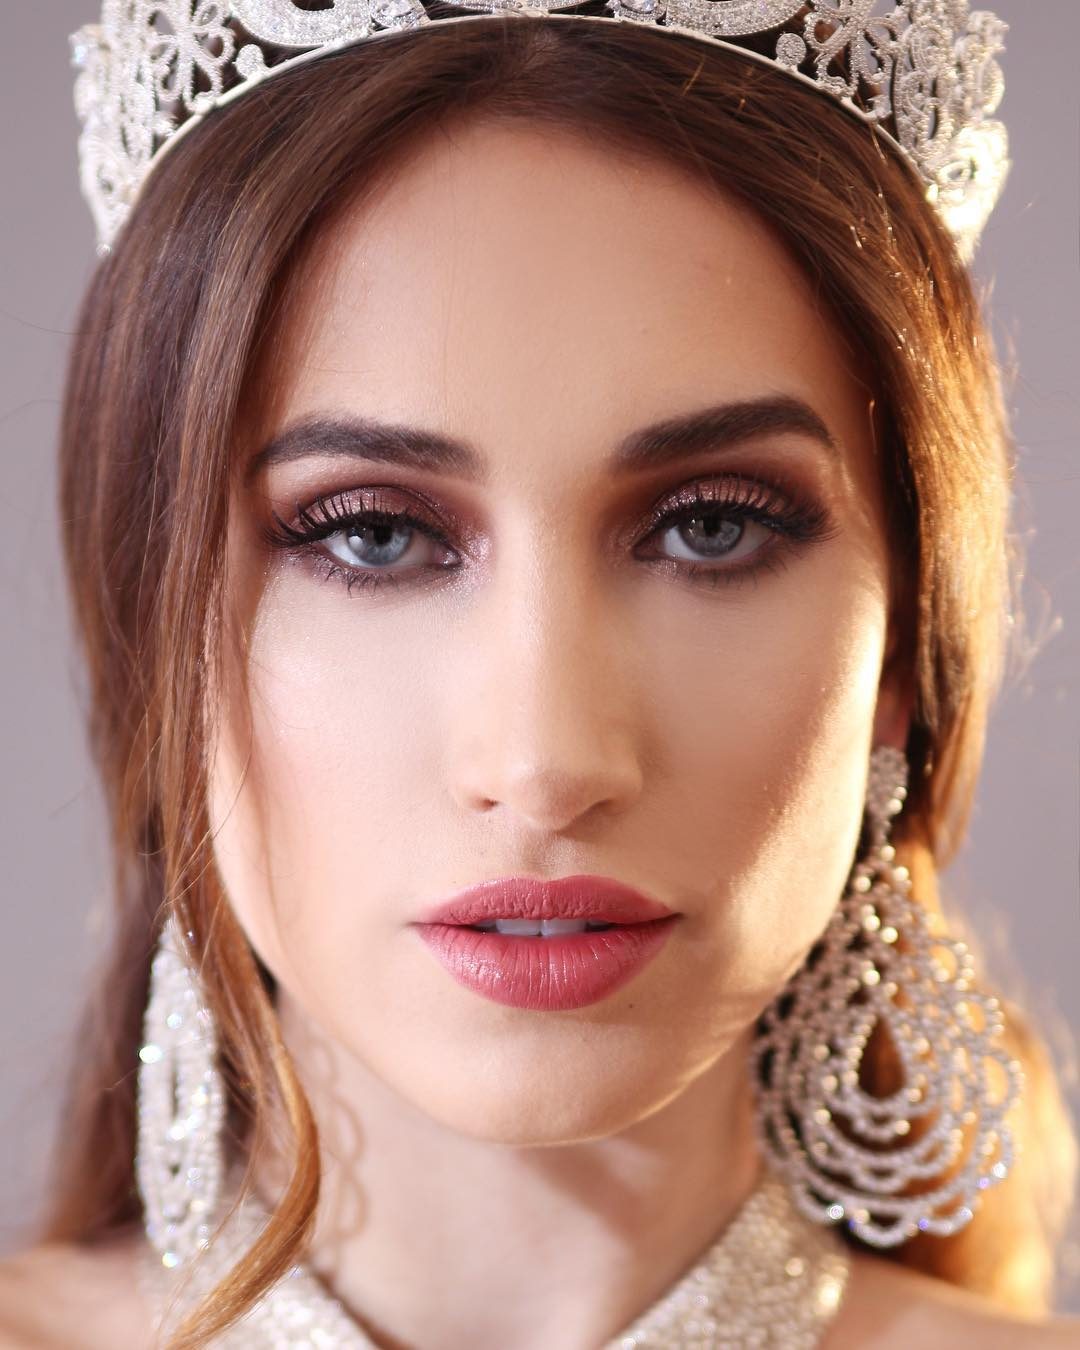 marcella marques, miss global city brazil 2017. 20688410